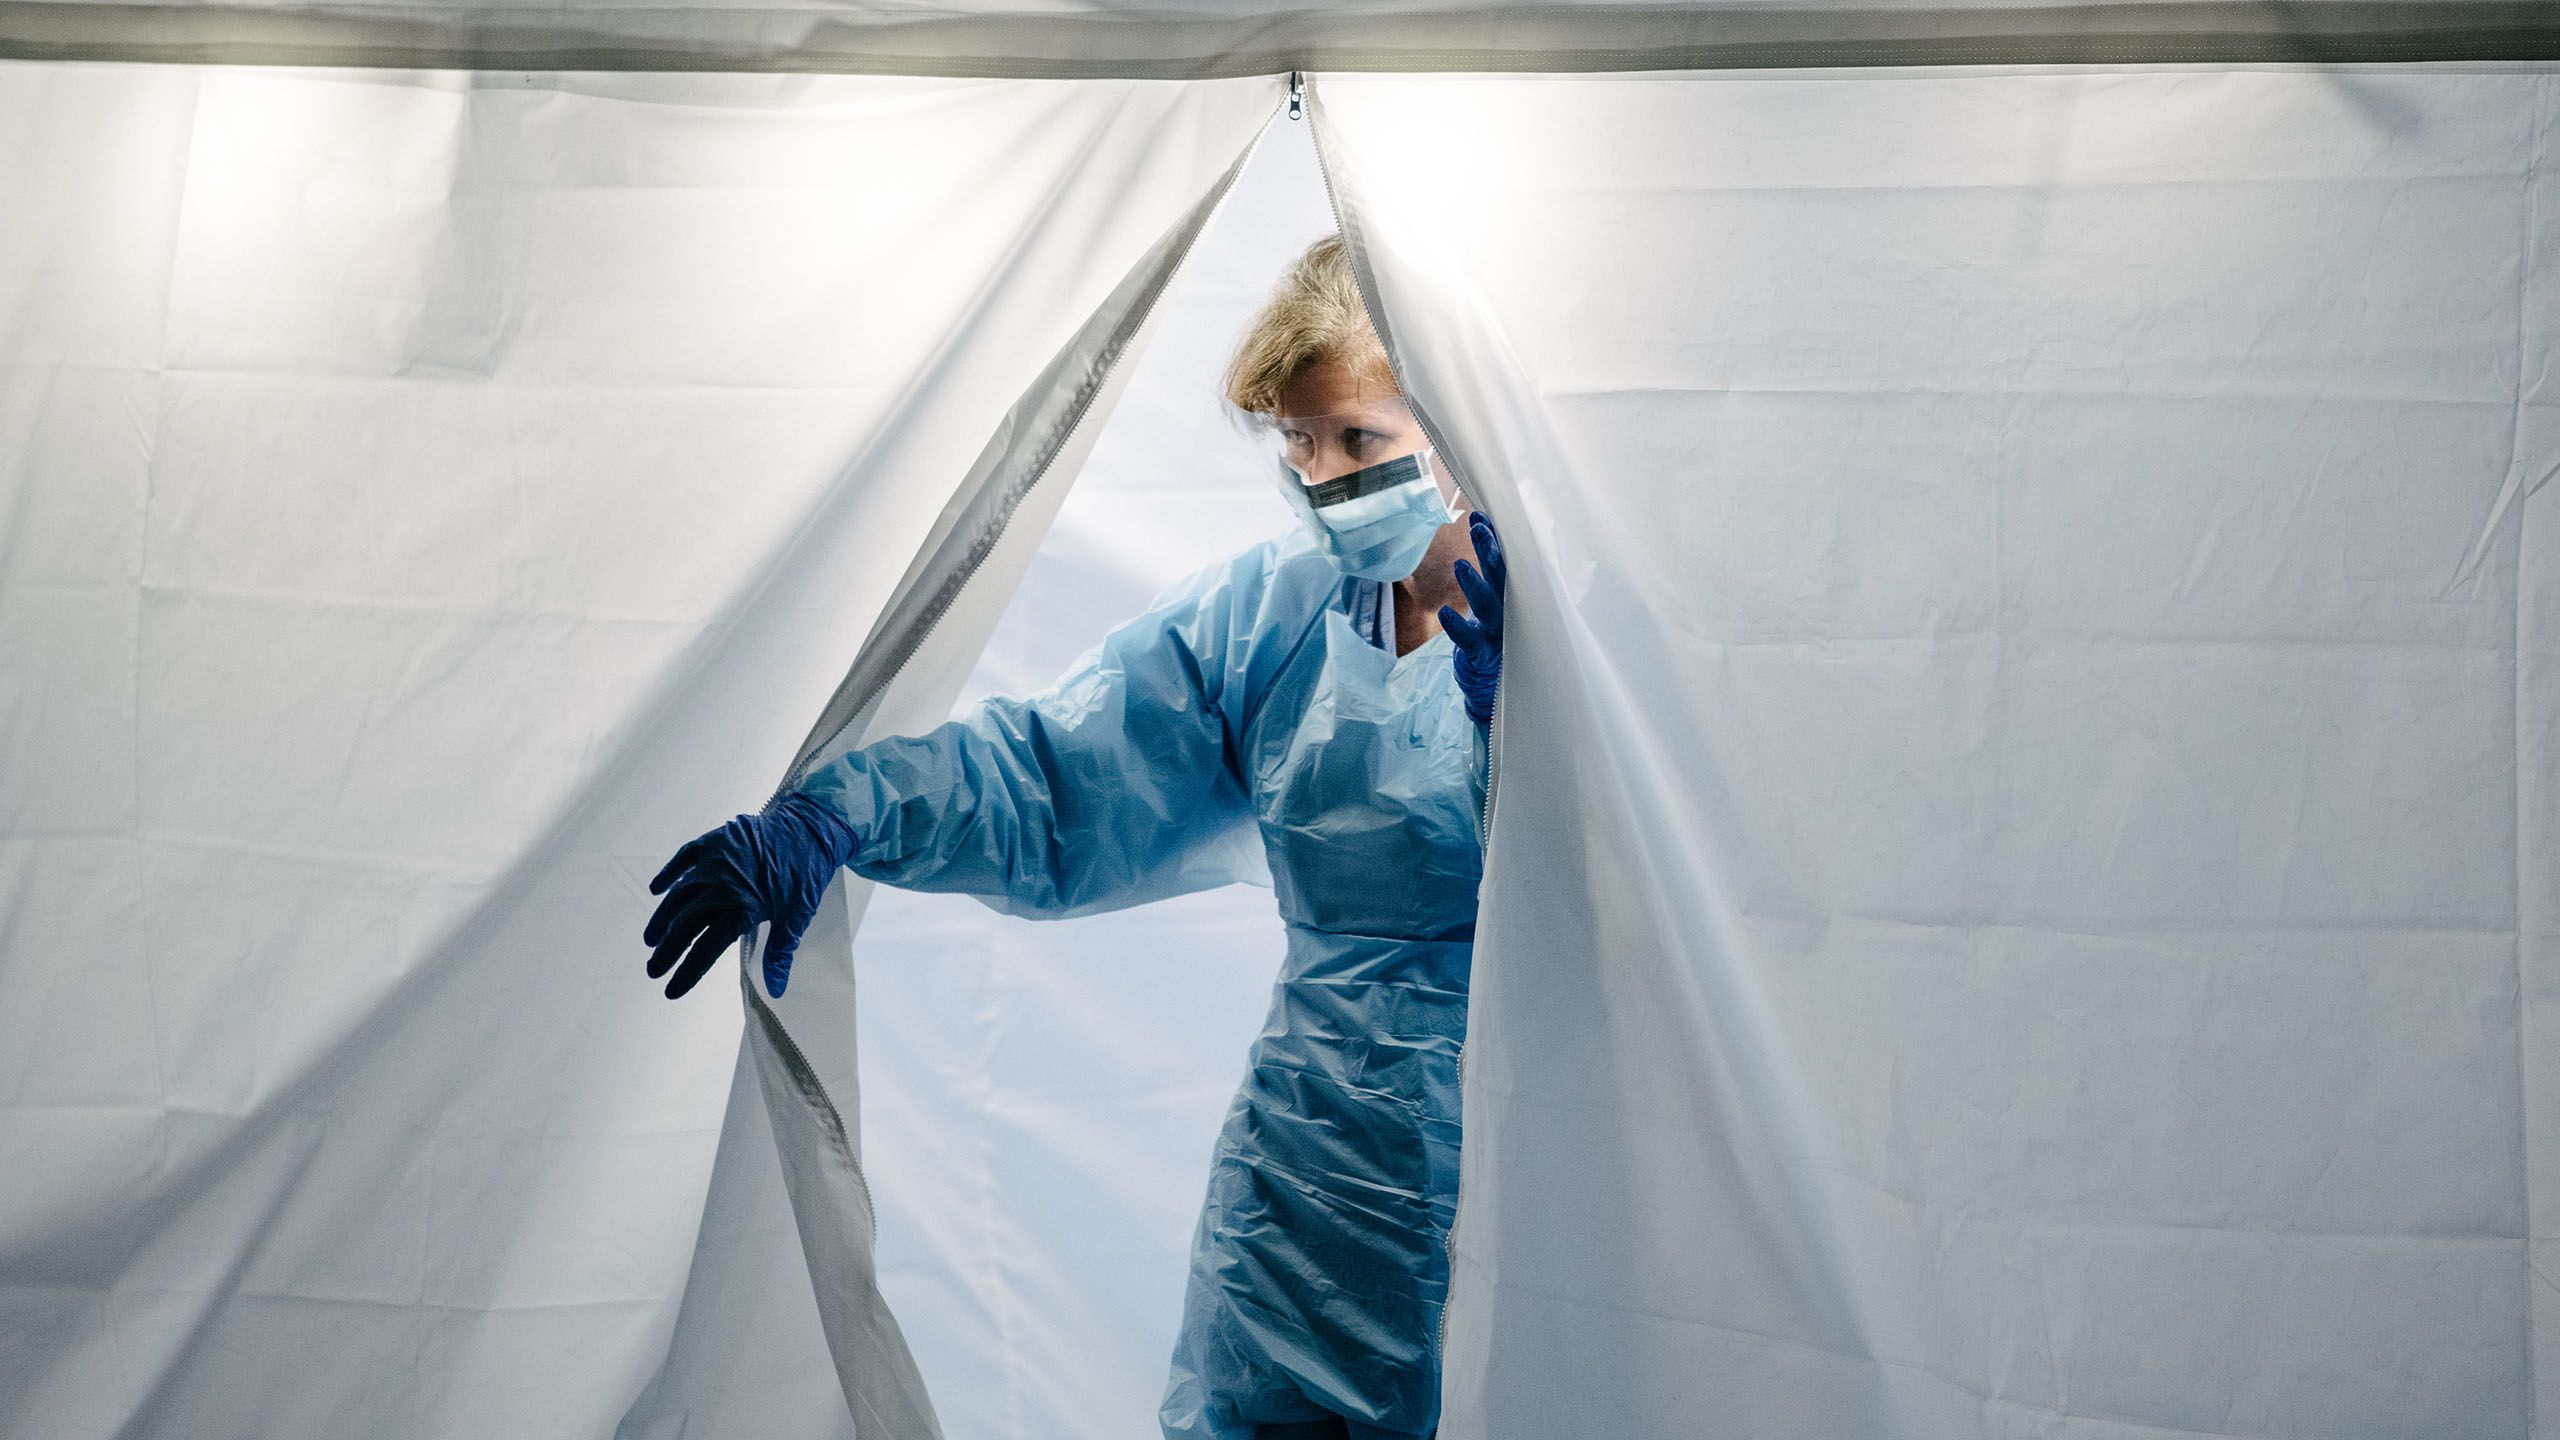 UW Medicine COVID-19 tester exits tent wearing personal protective equipment